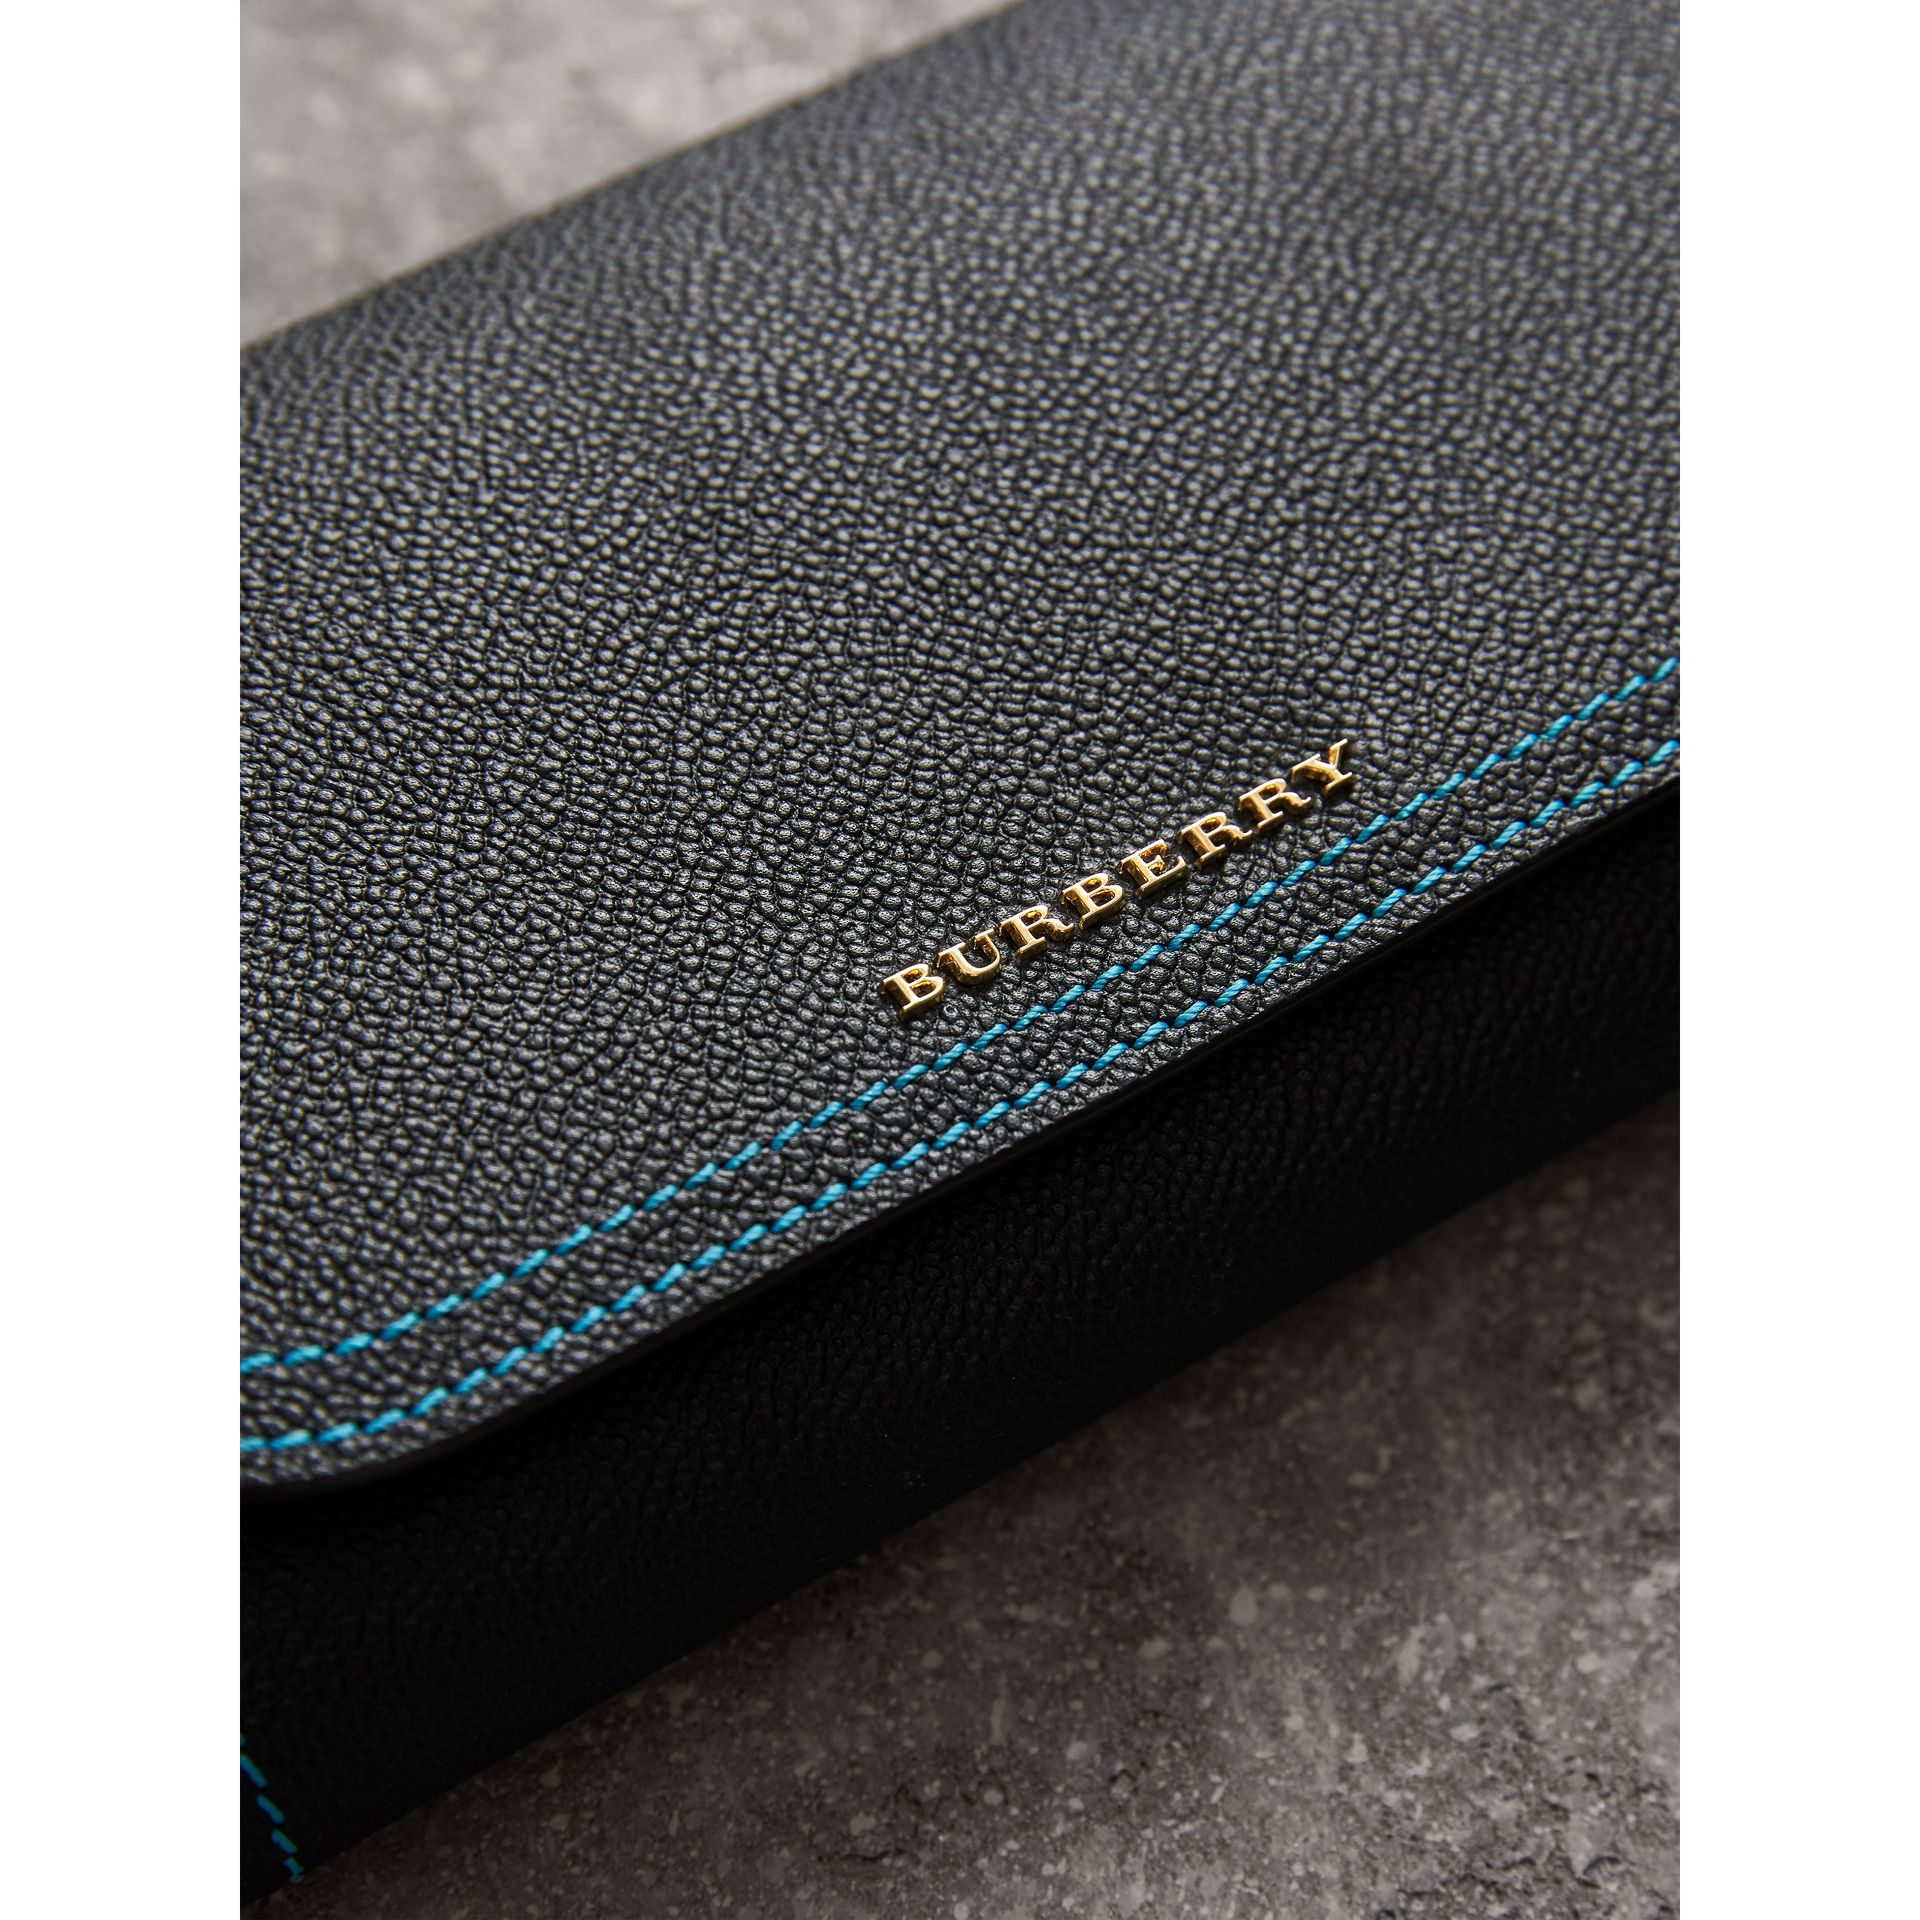 Topstitch Detail Leather Wallet with Detachable Strap in Black/multicolour - Women | Burberry - gallery image 2